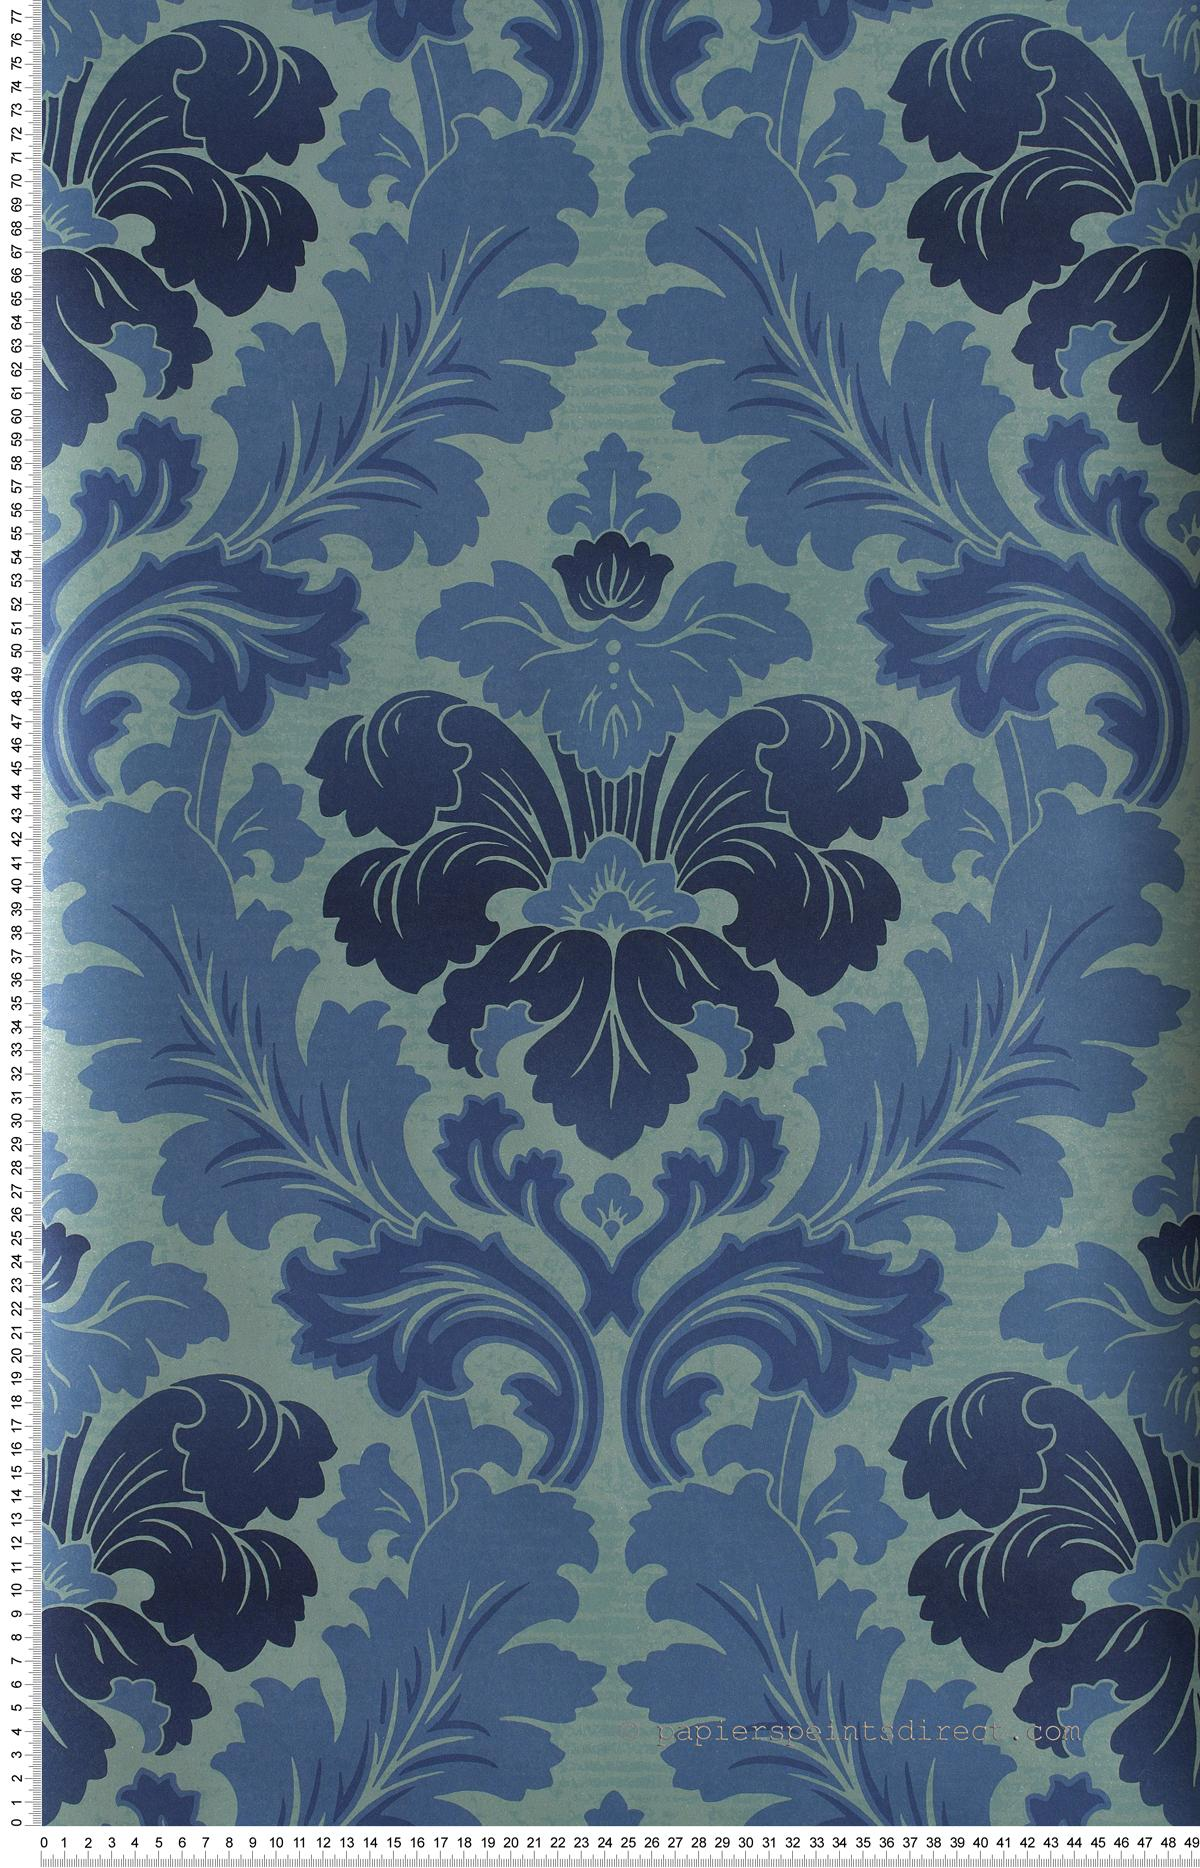 Bonaparte Imperial - papier peint Revolution Papers de Little Greene